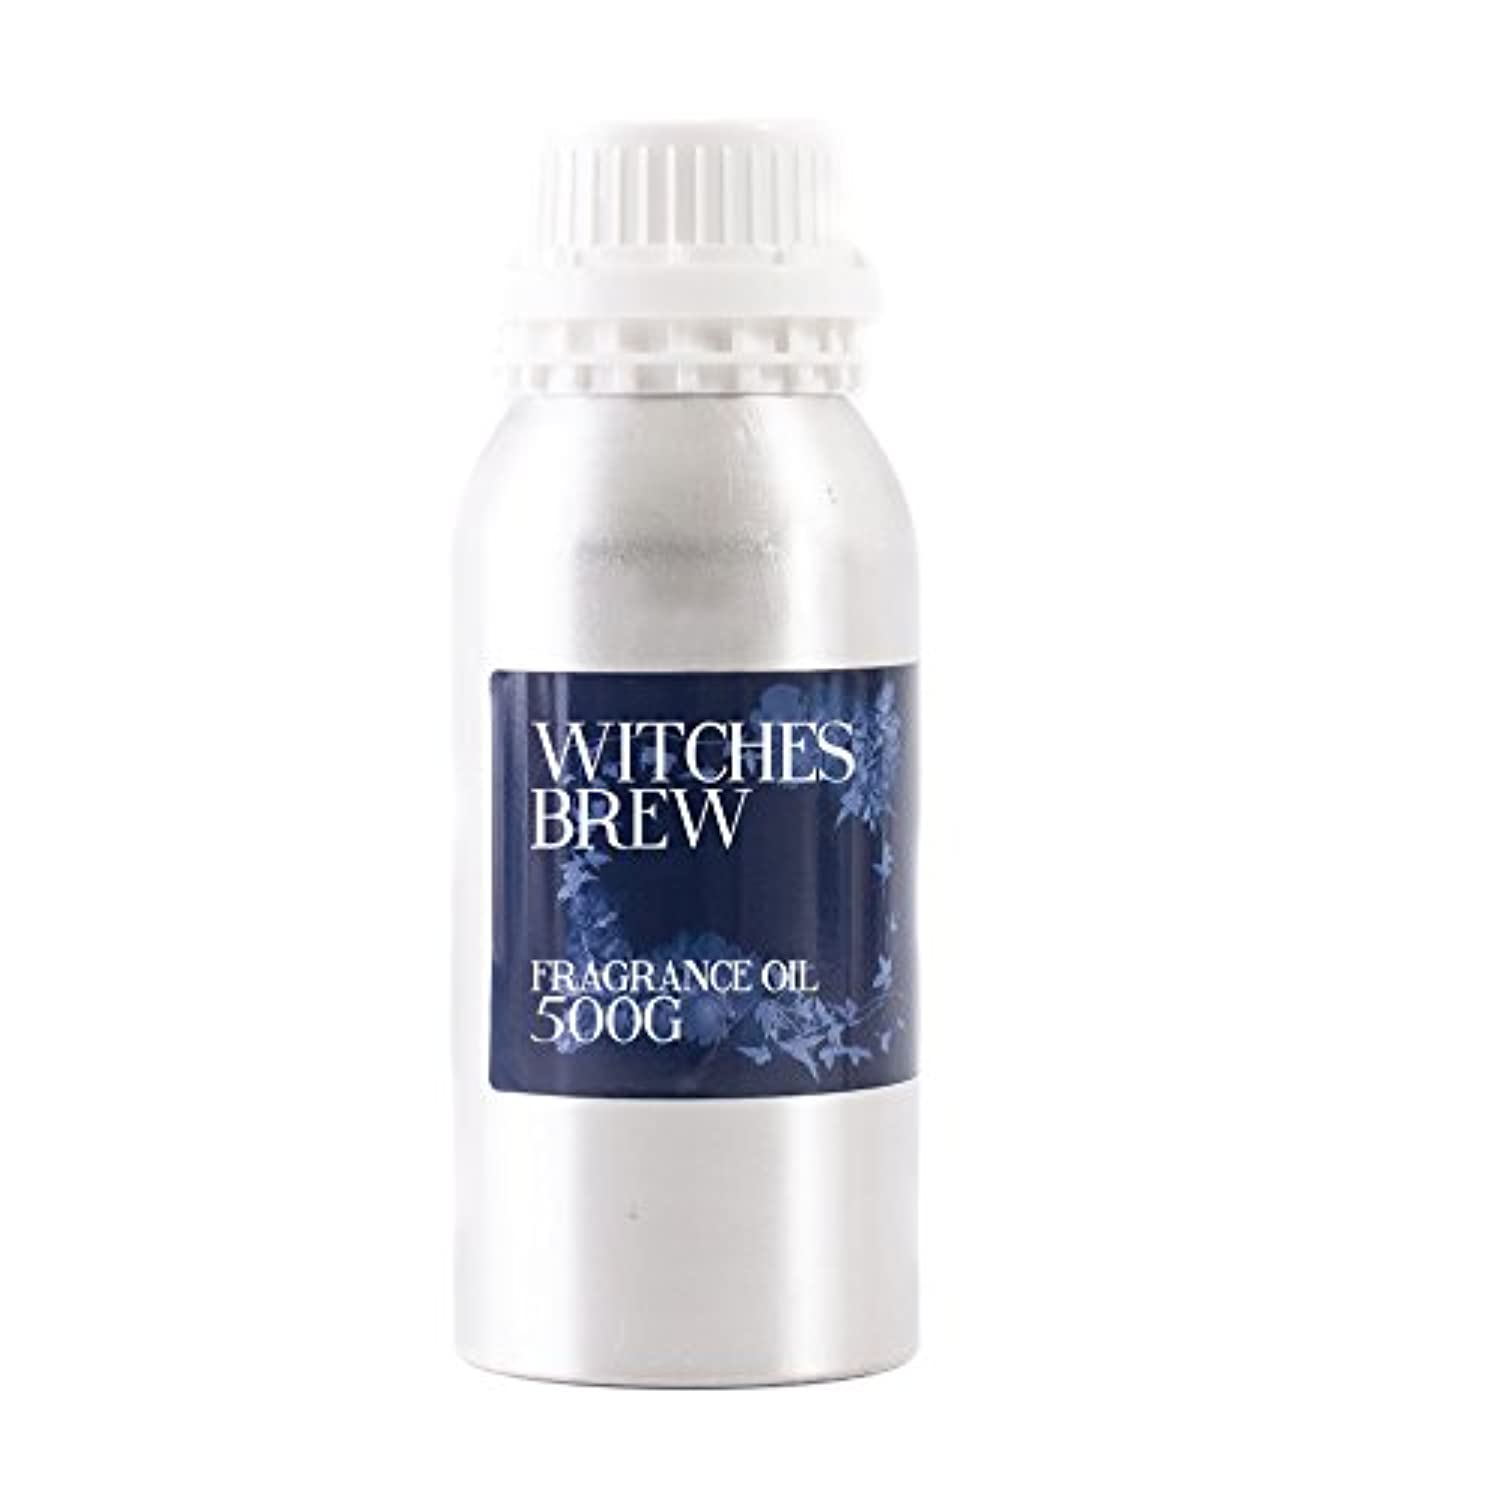 Mystic Moments | Witches Brew Fragrance Oil - 500g